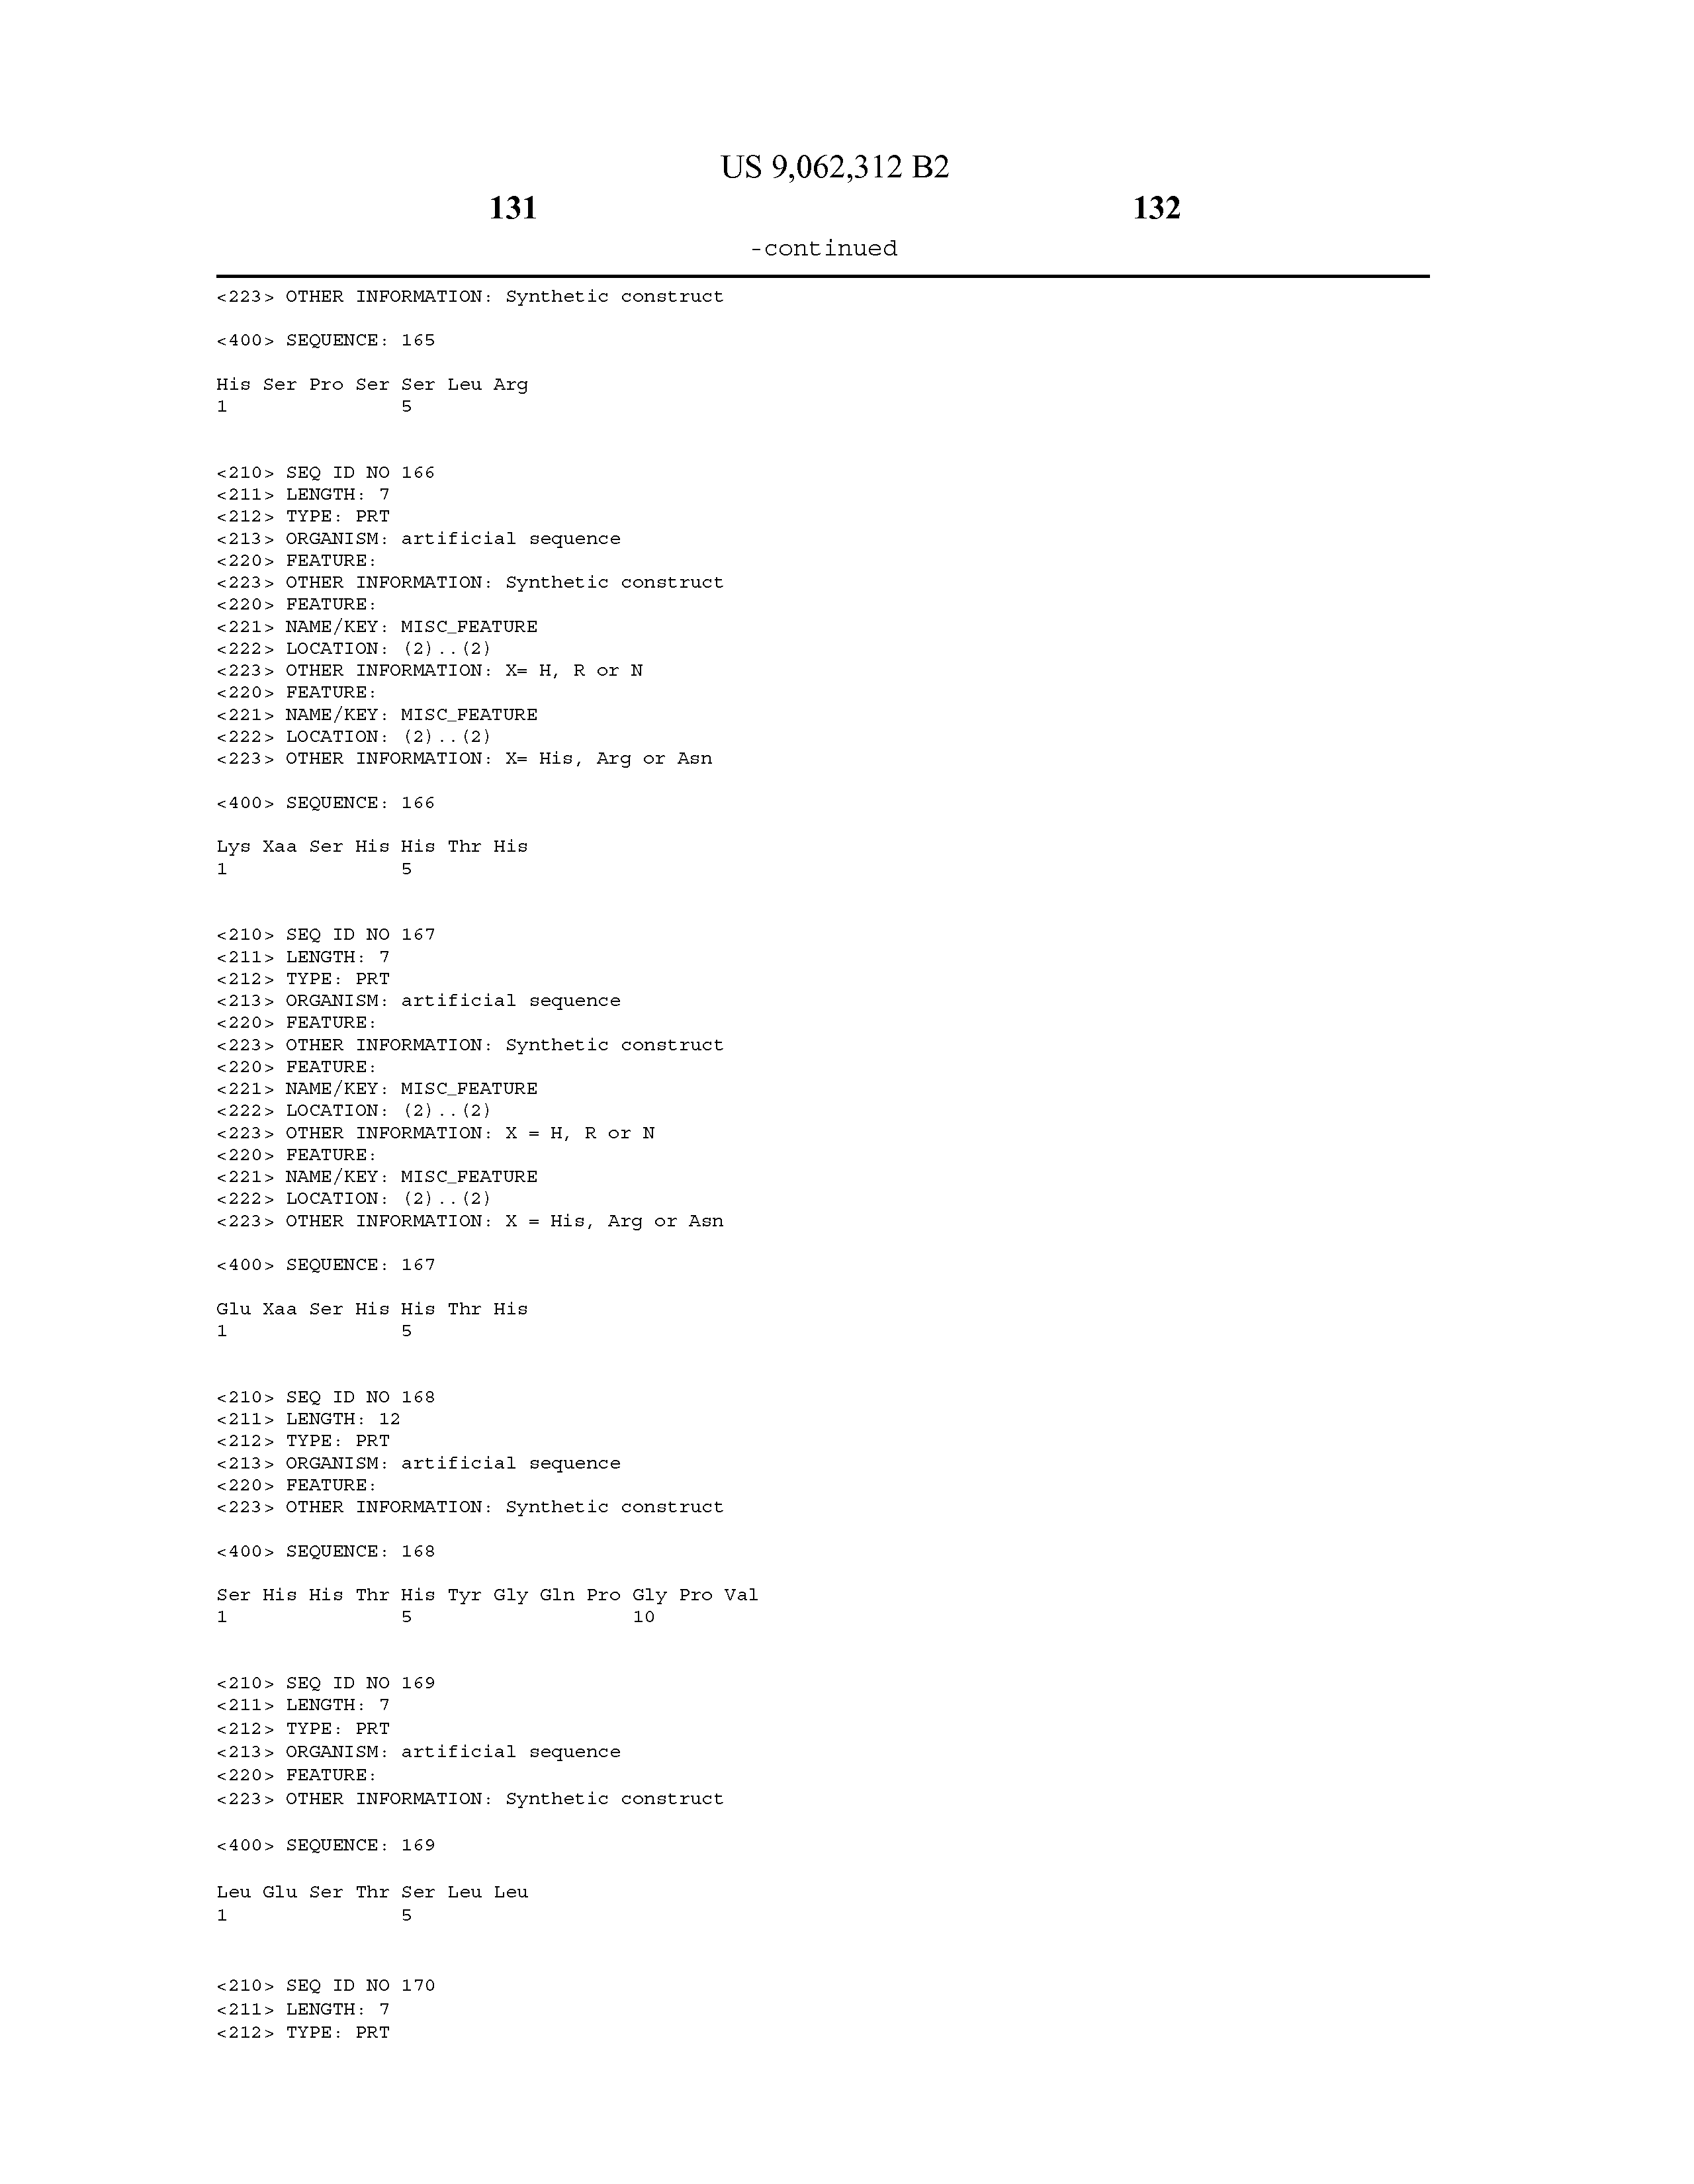 US 9062312 B2 - Fusion Peptides Comprising Multi-functional